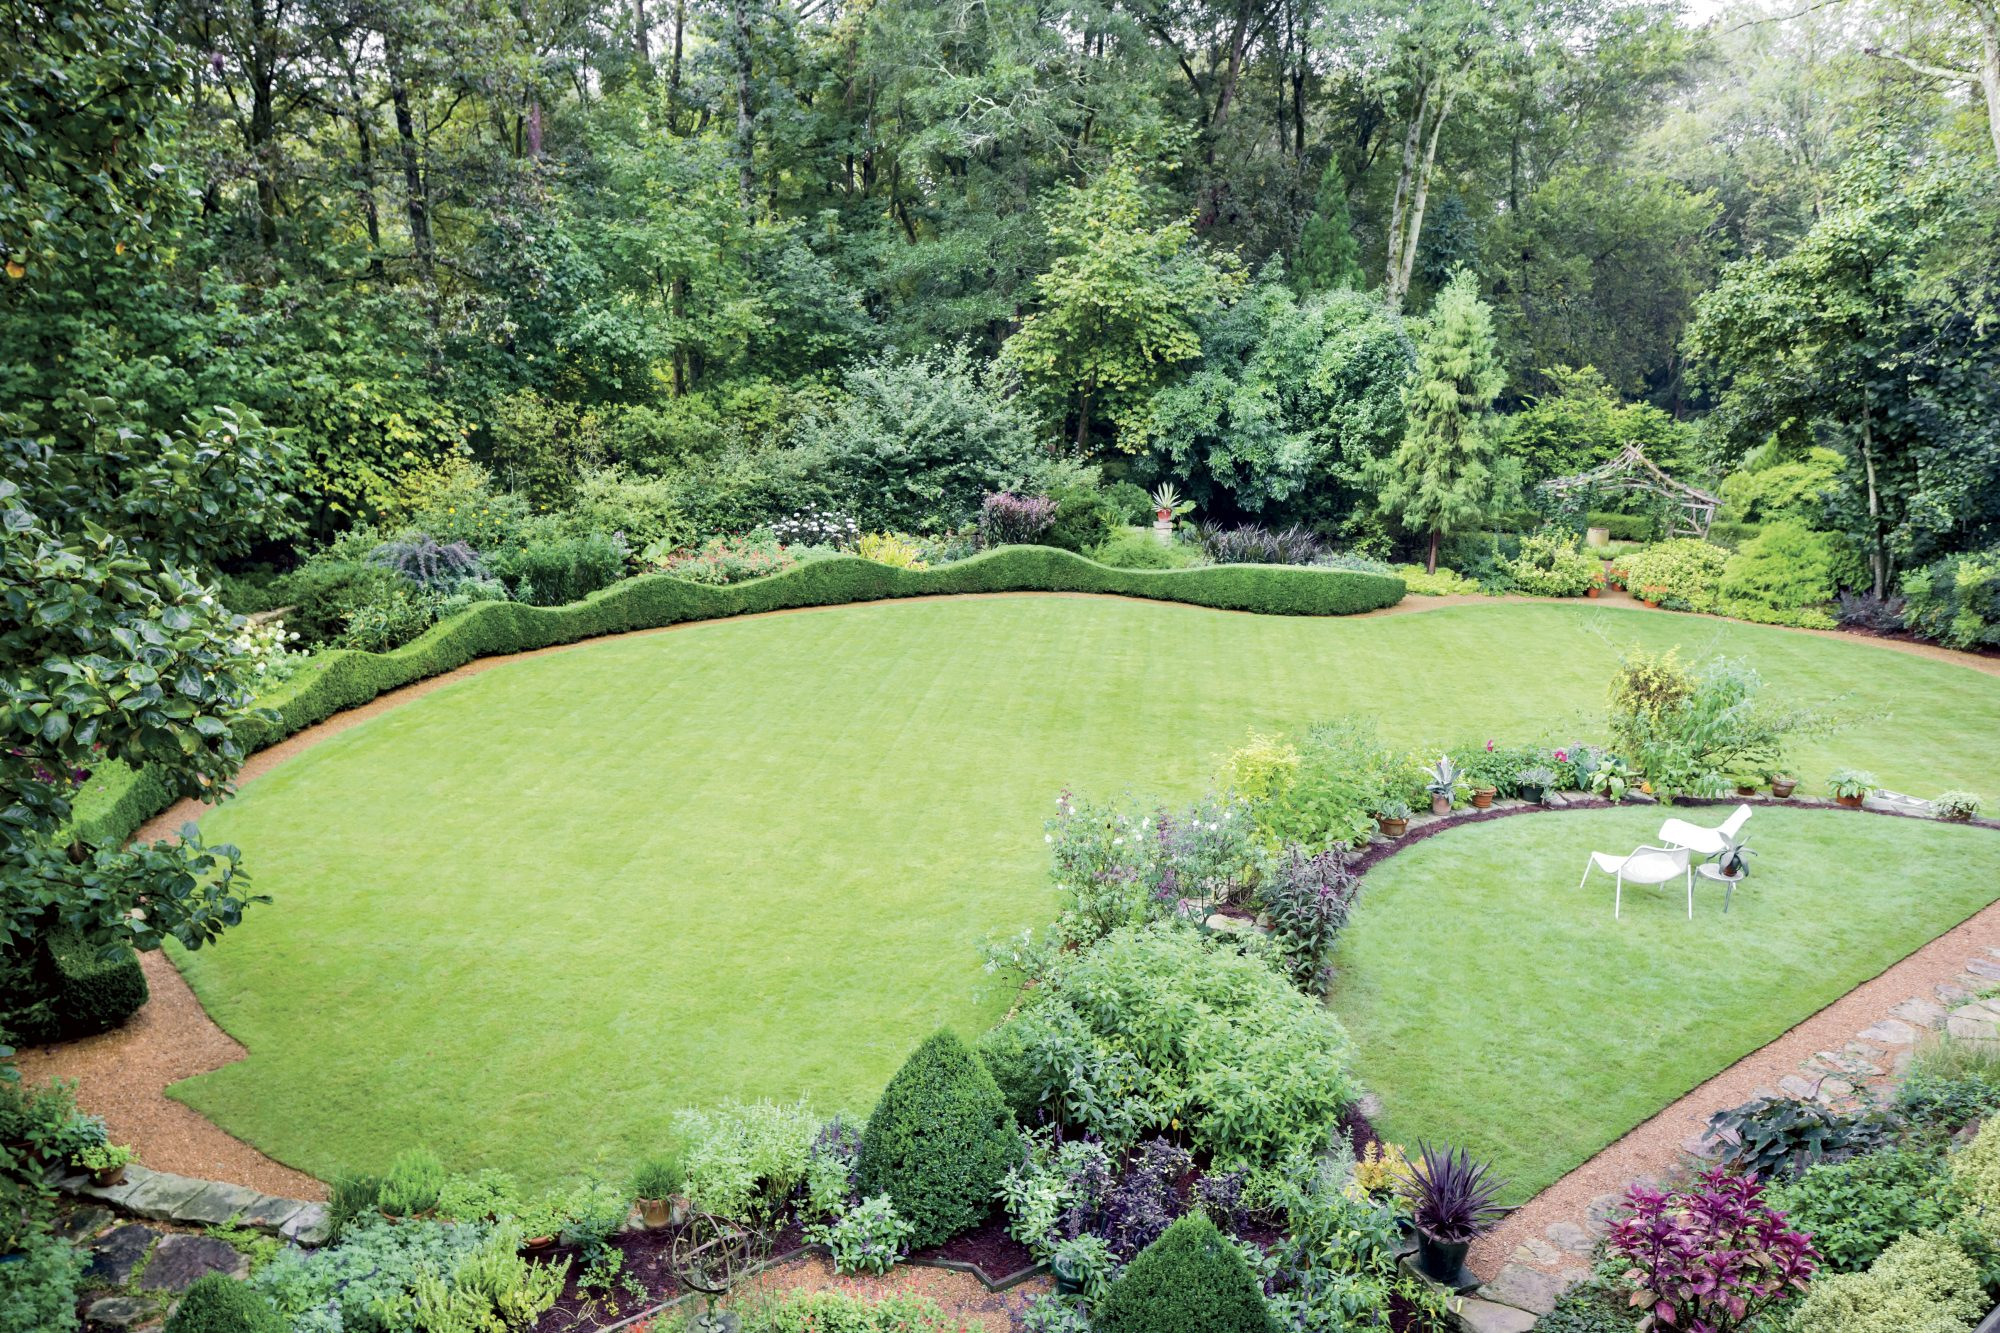 Fennel Maudlin's Garden Lawn with Boxwood Hedge